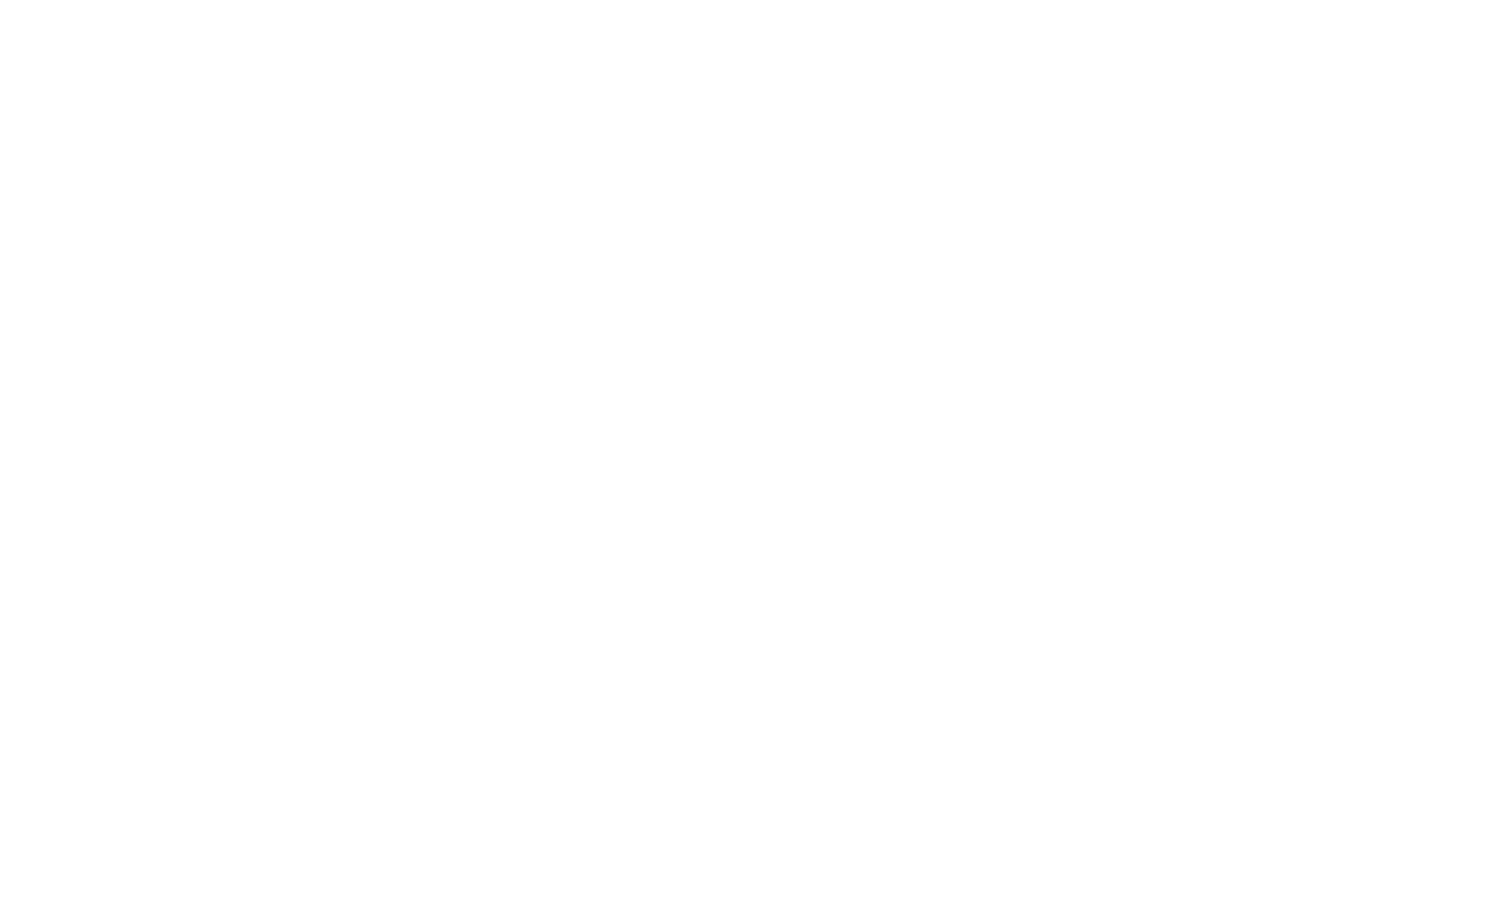 Mis(sed) Adventures Project